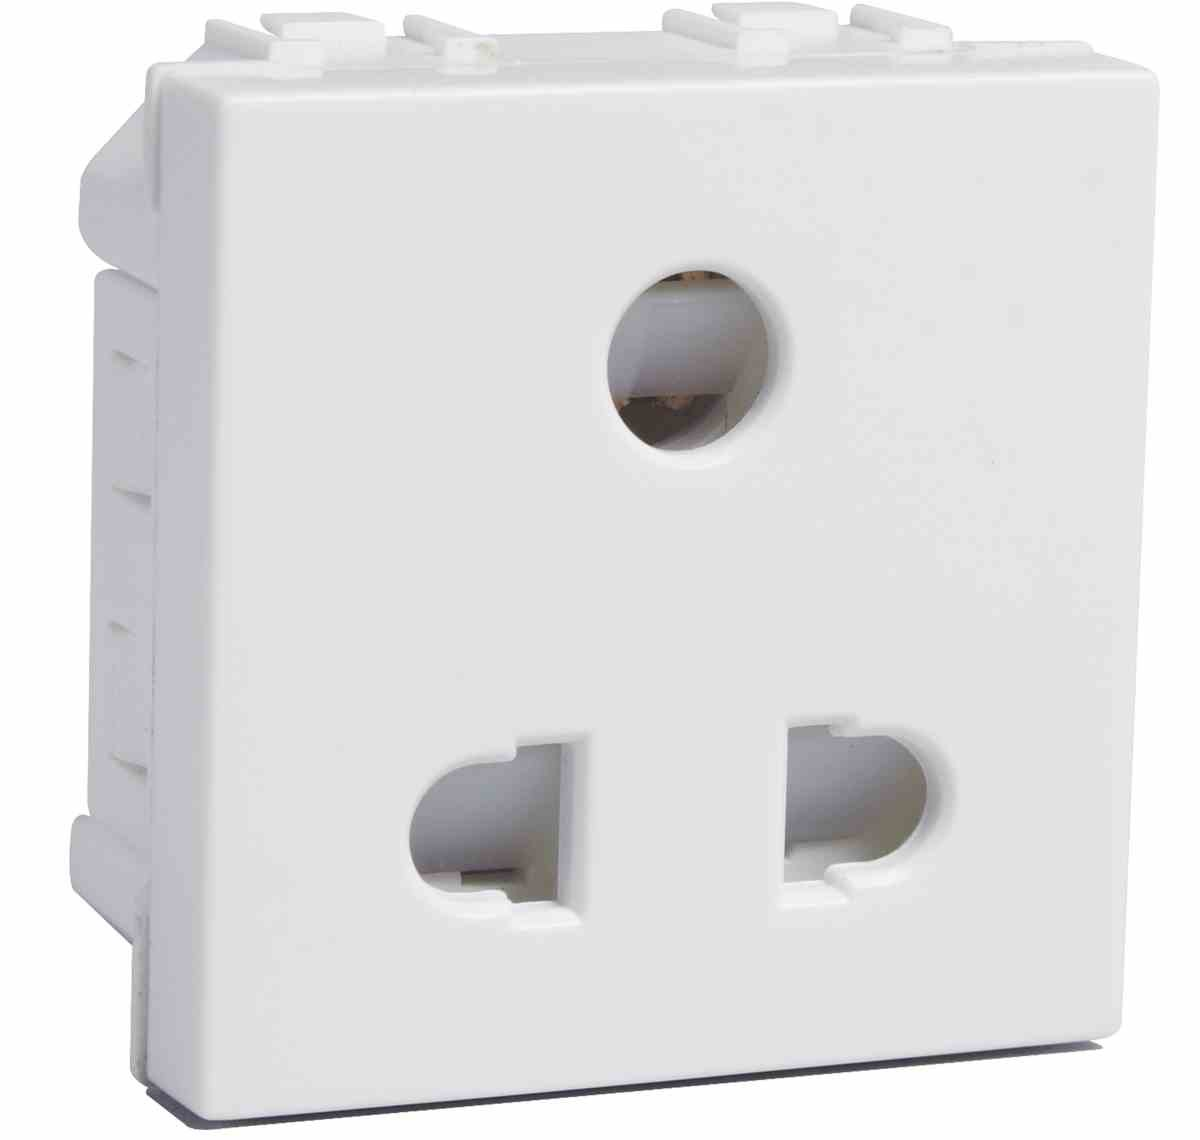 6a 2 Module Three Pin Shuttered Socket - Electrical and Networking ...